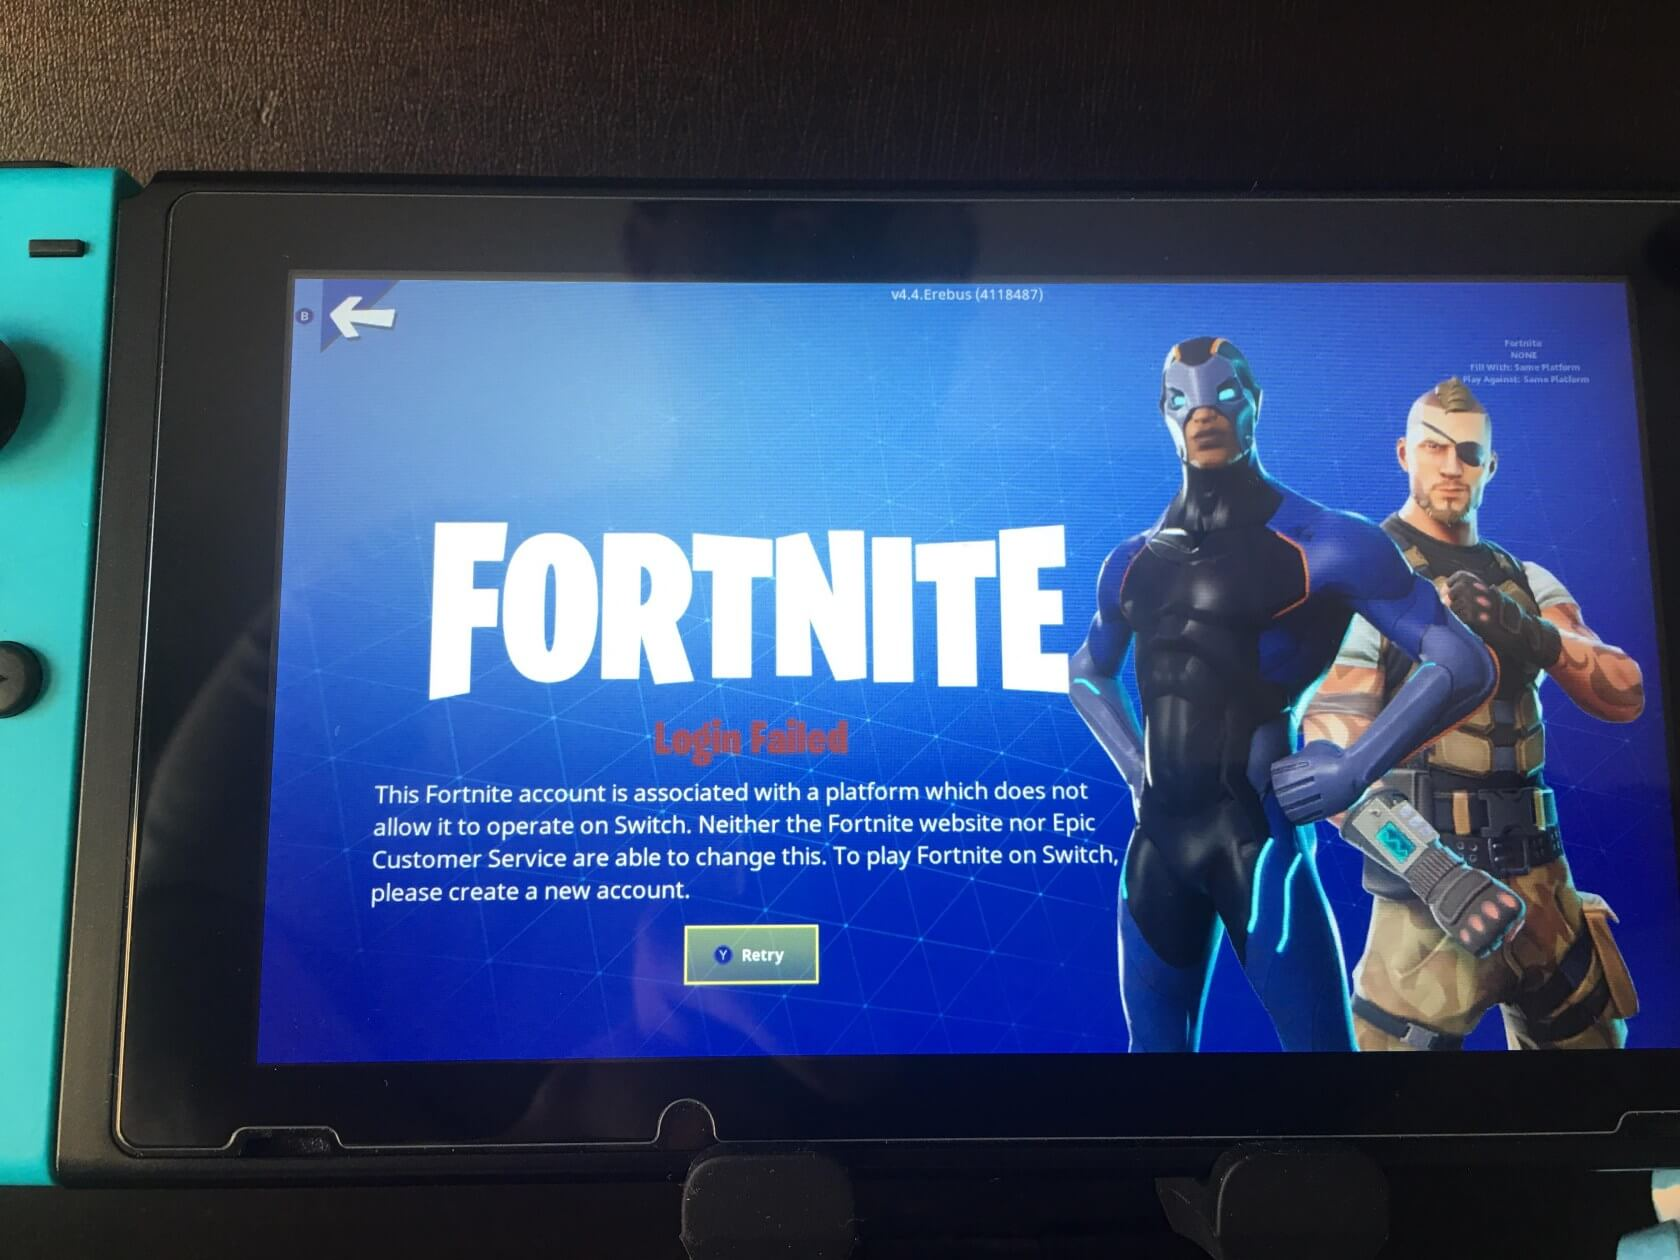 PlayStation 4 Fortnite players blocked from playing on Switch